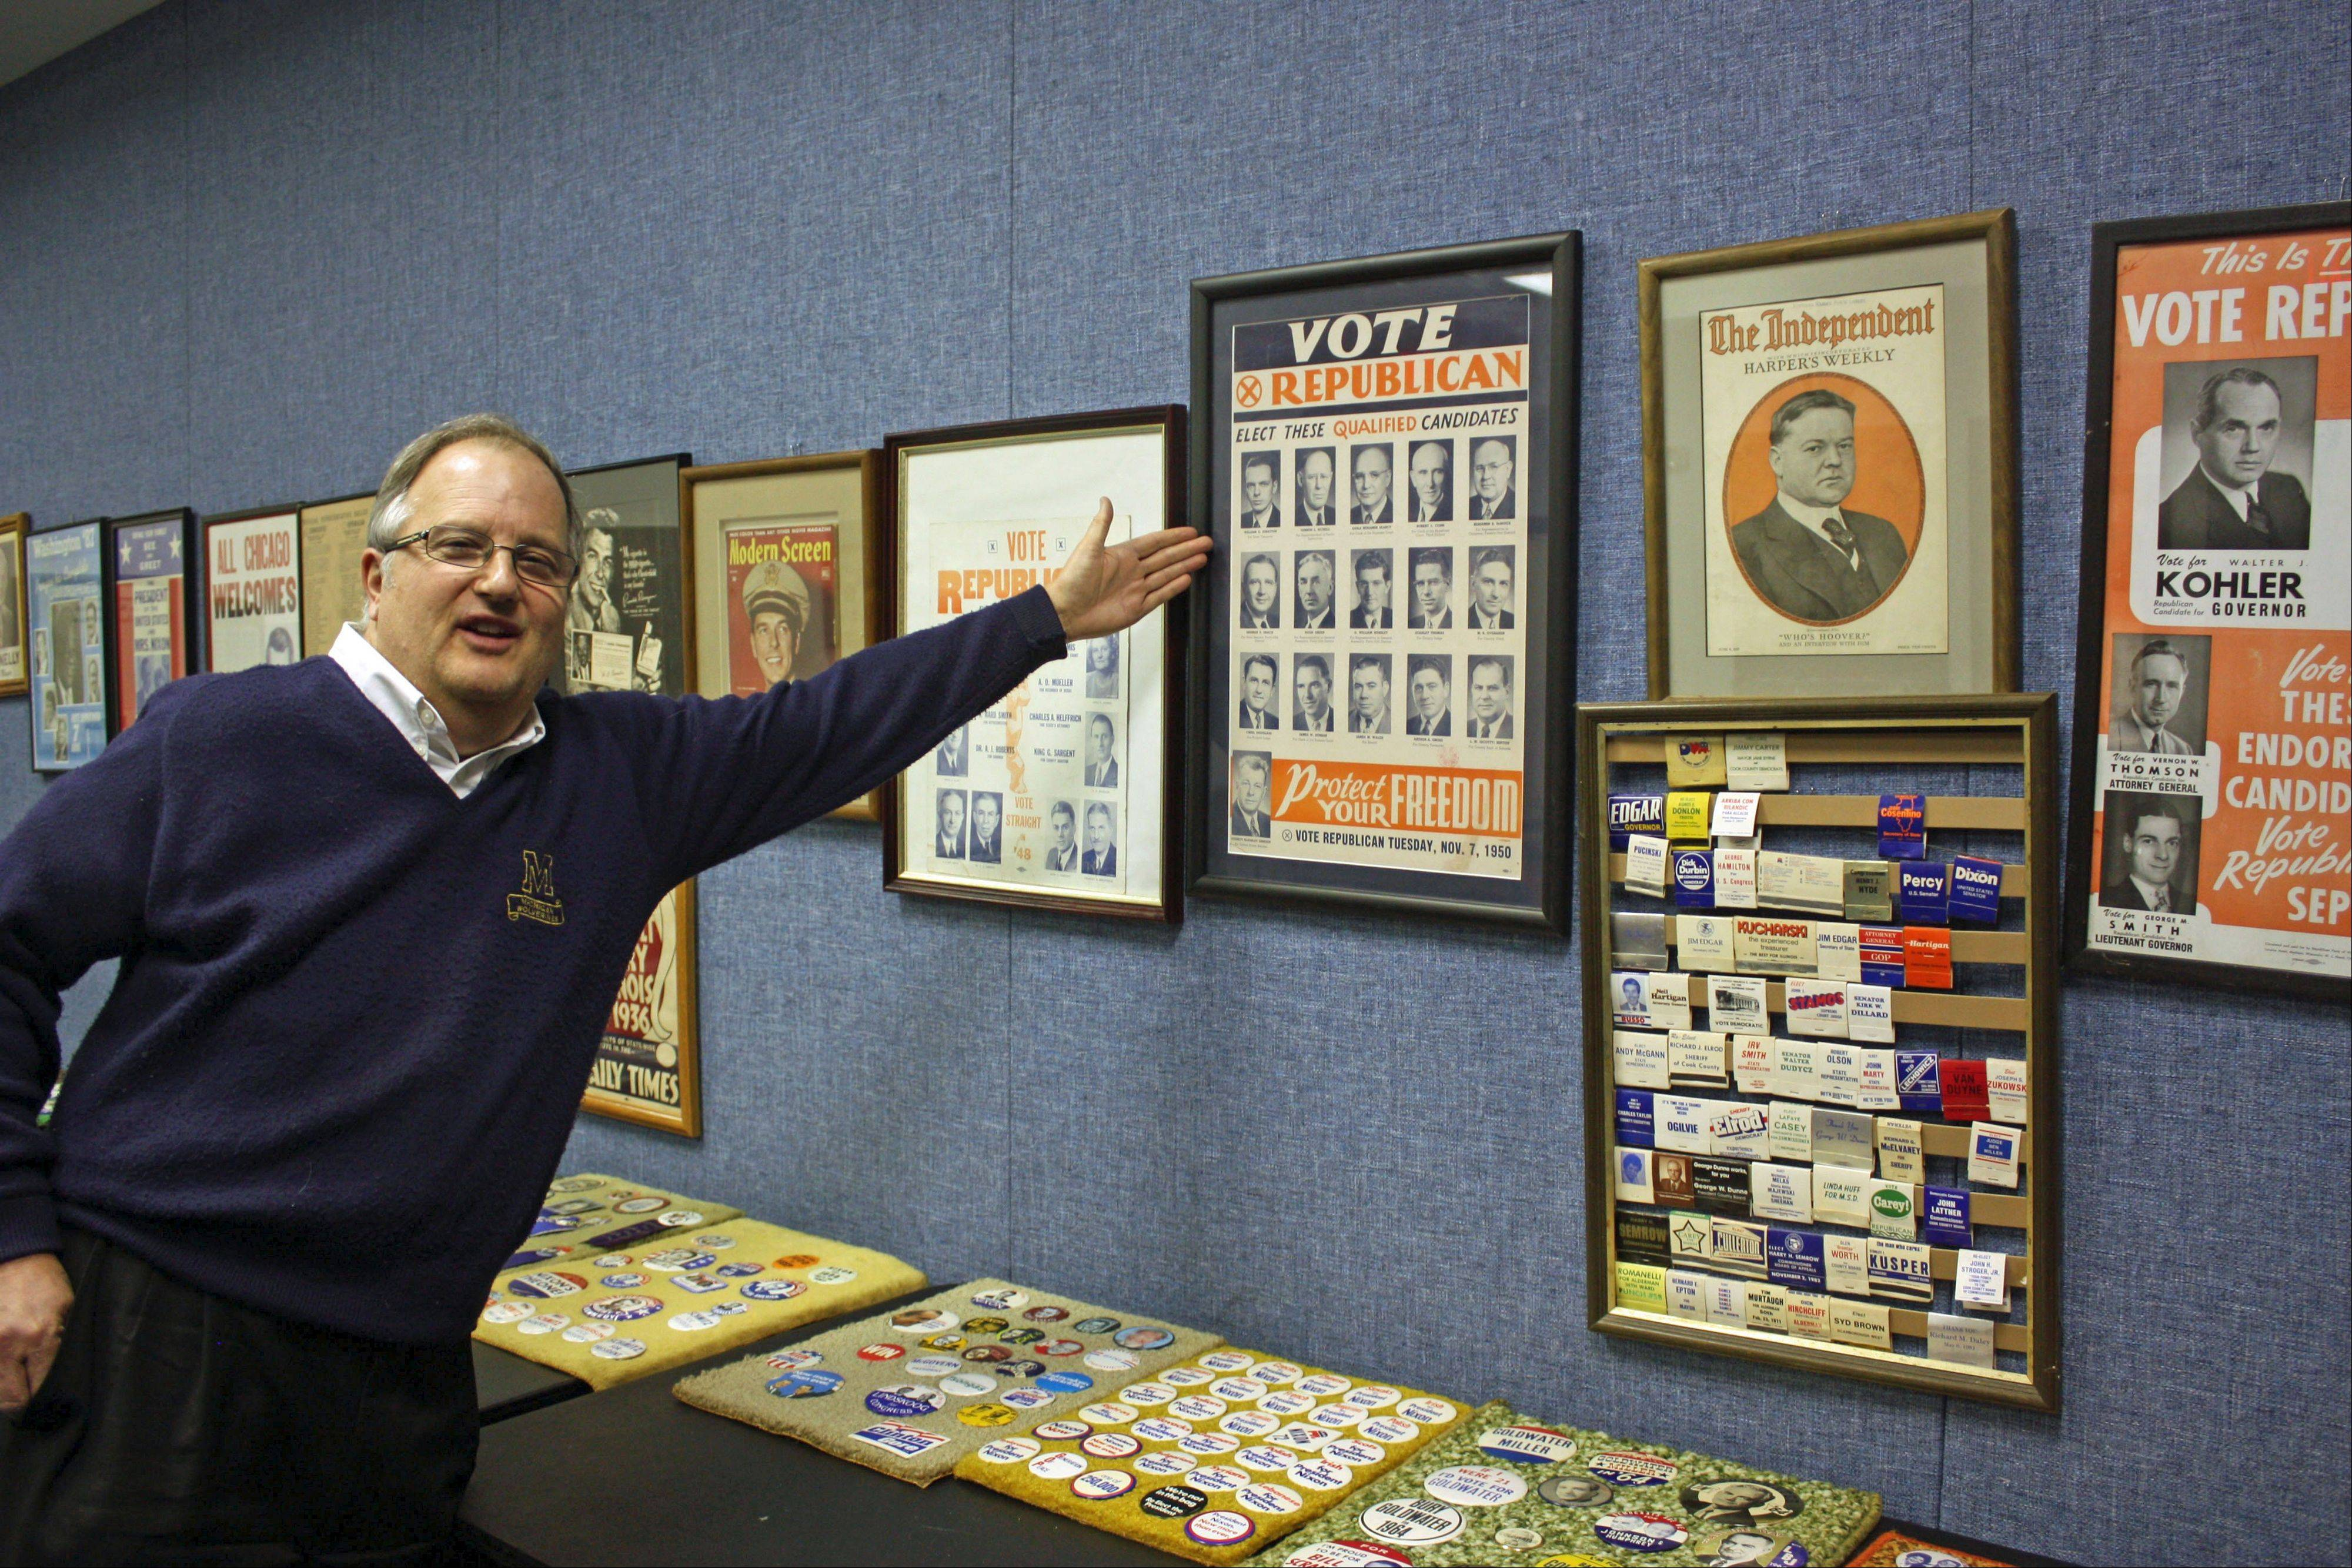 Lisle's John Huff estimates his diverse collection has 5,000 pieces, ranging from local to national elections.